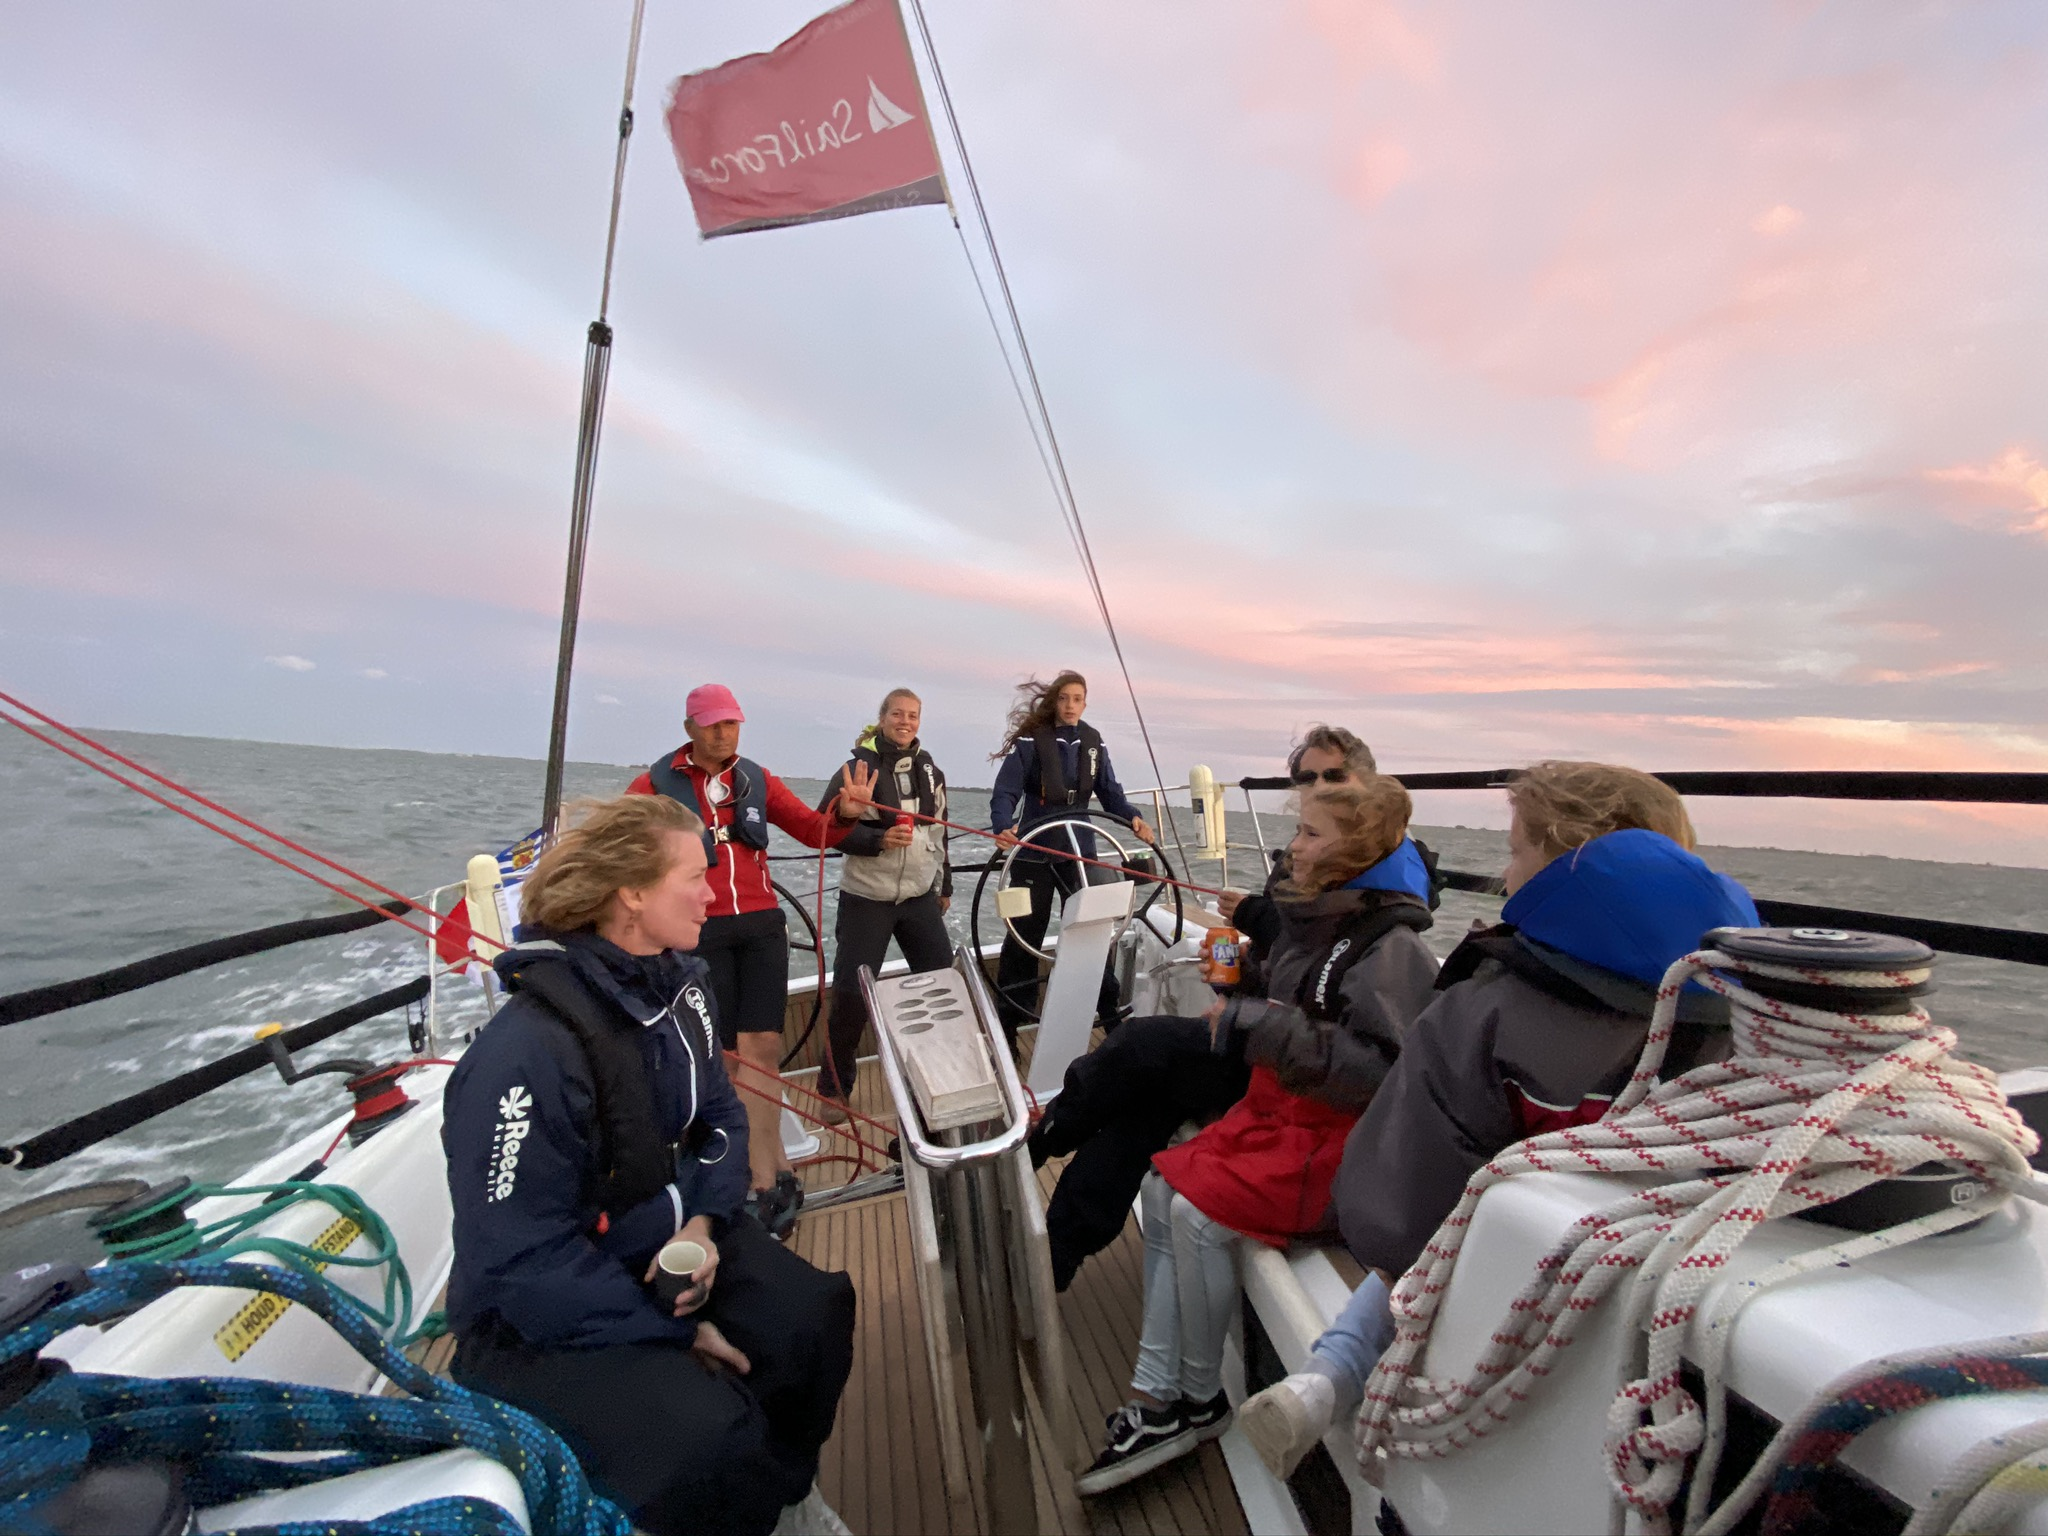 Sunset sailing met SailForce 23-24 juli 2021